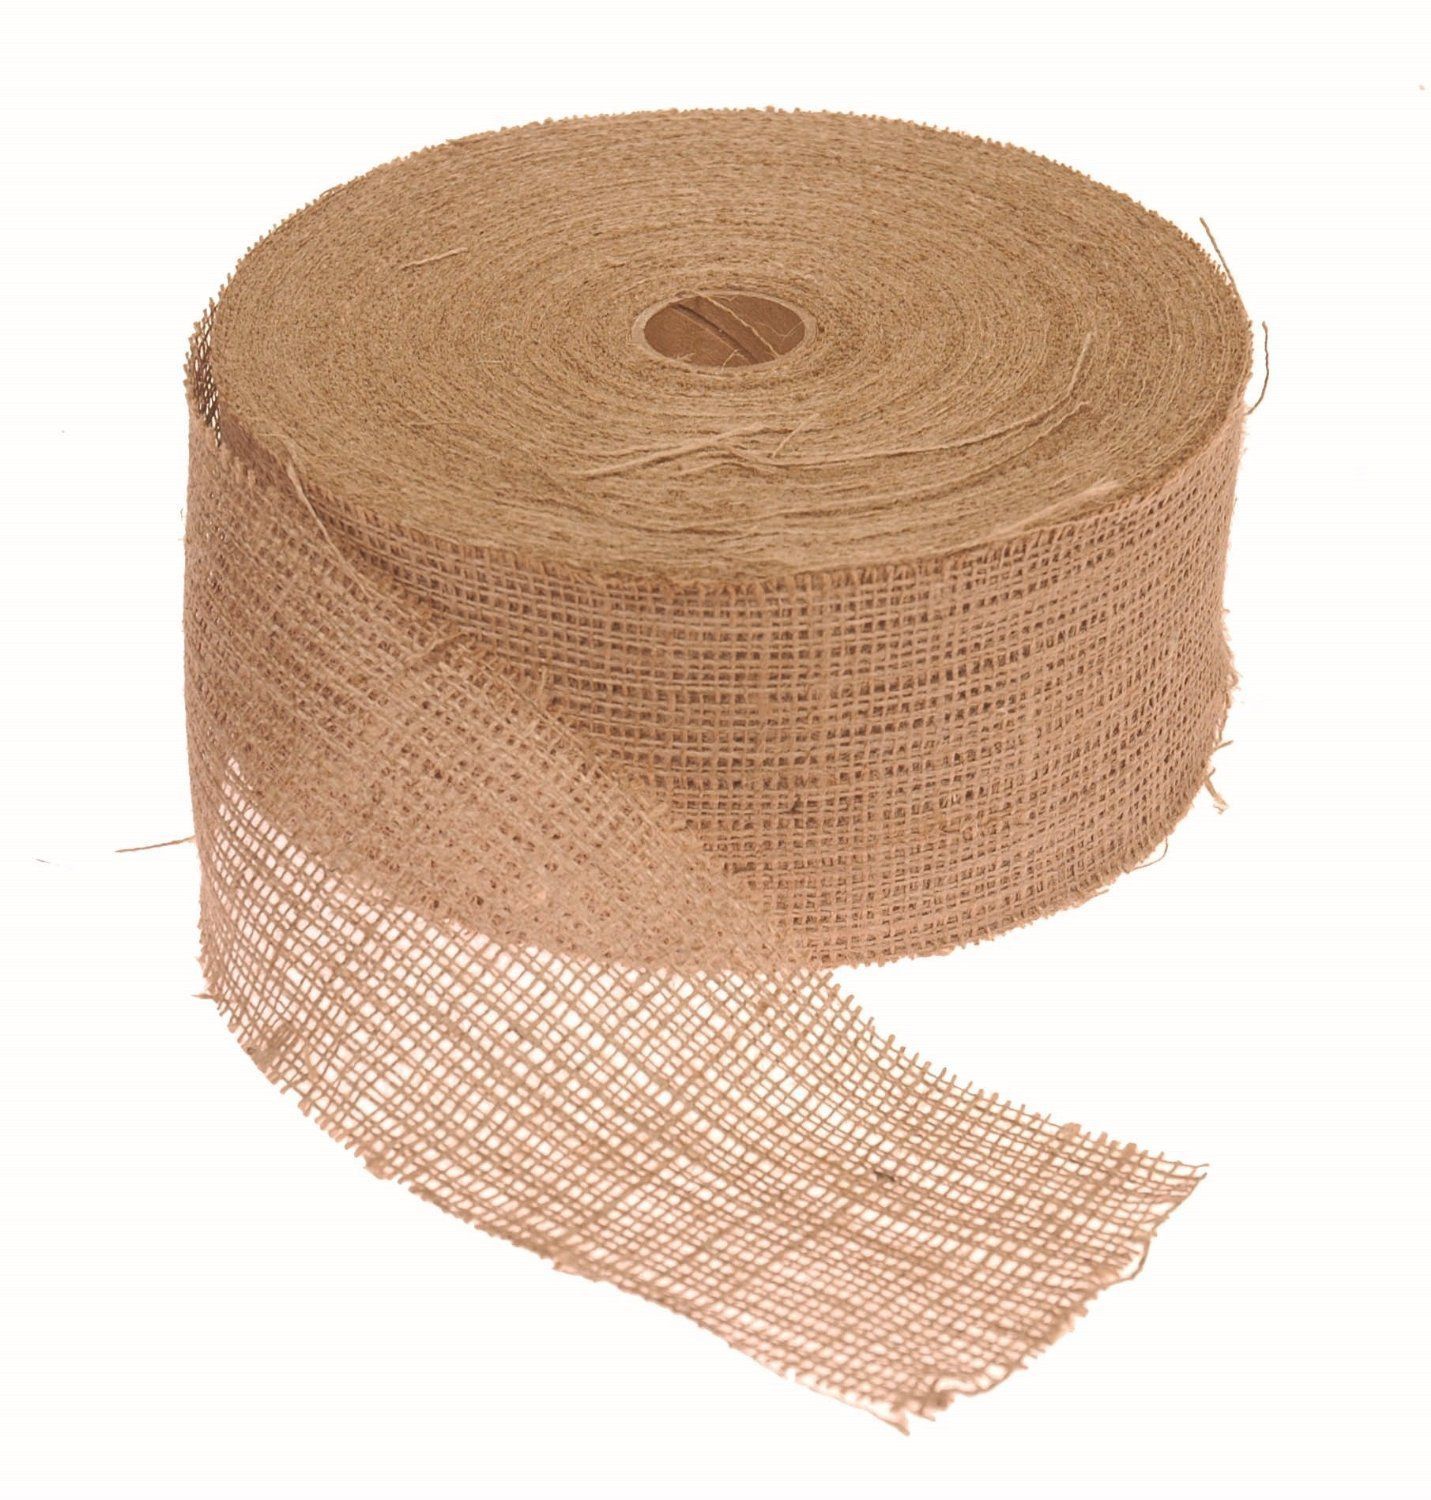 Amazing Burlap Deal 300 Foot Roll I Use For Crafting Only Ten Dollars Burlap Ribbon Burlap Rolls Burlap Trees